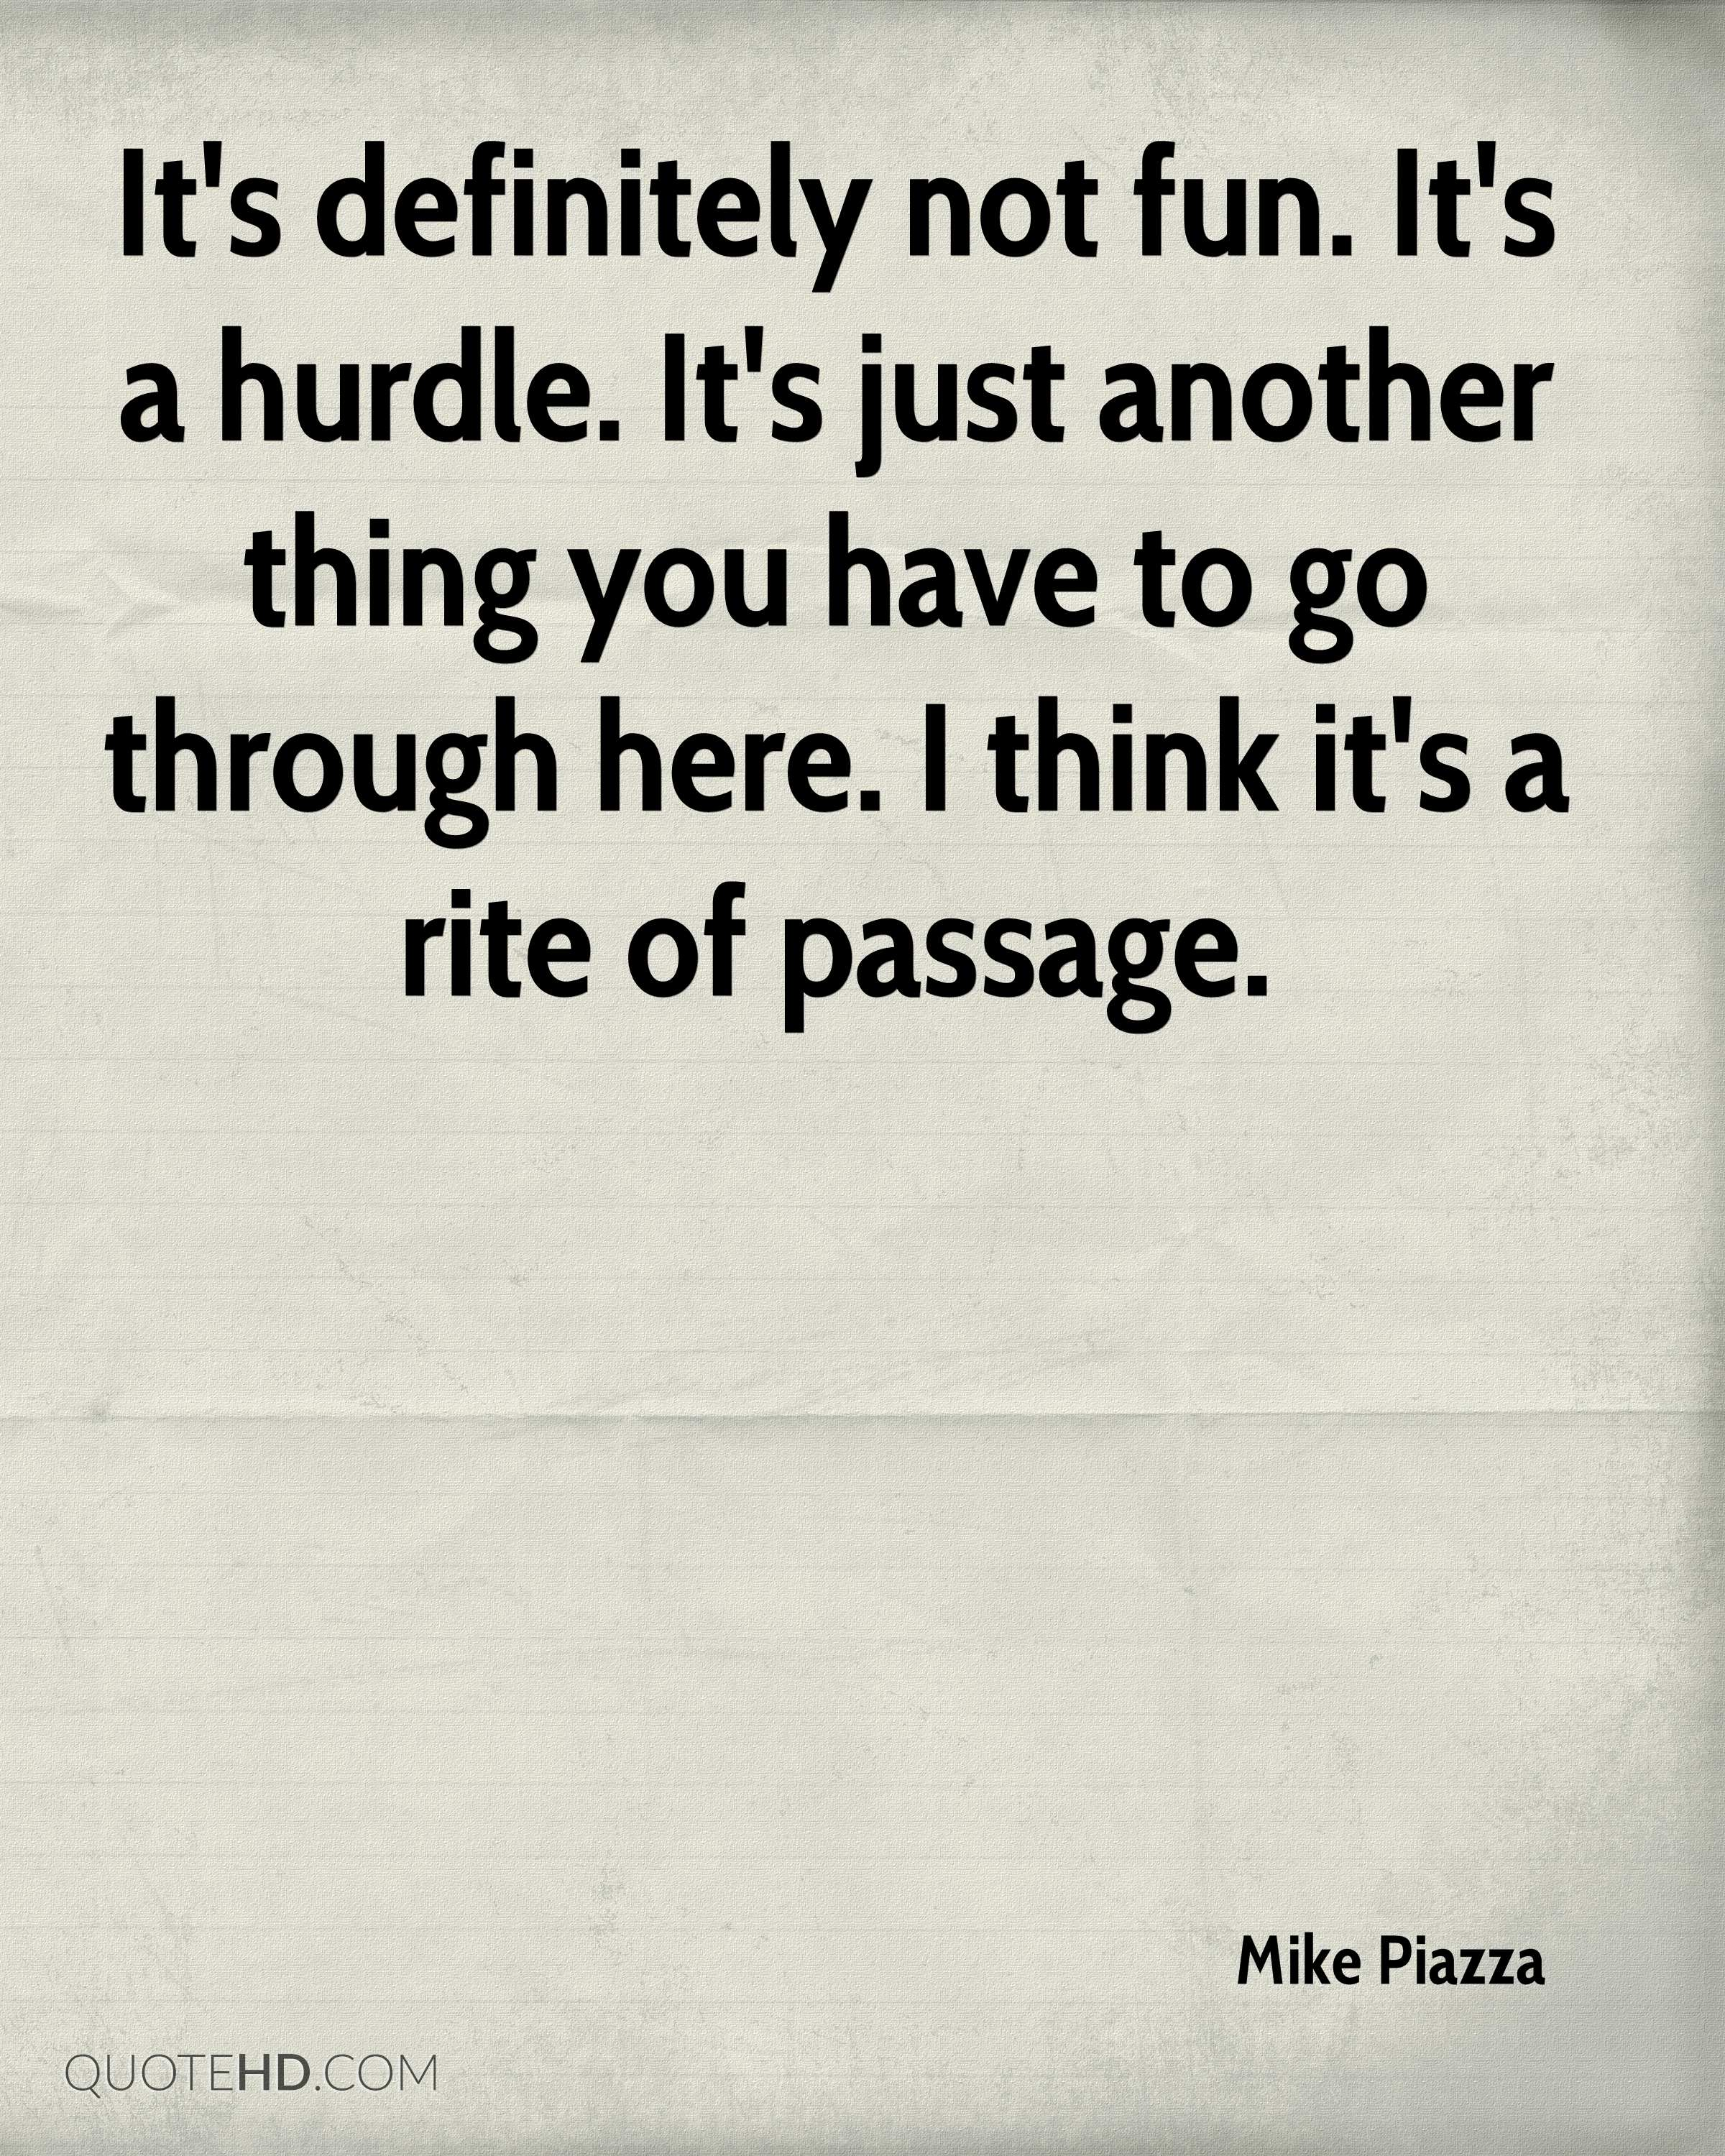 It's definitely not fun. It's a hurdle. It's just another thing you have to go through here. I think it's a rite of passage.